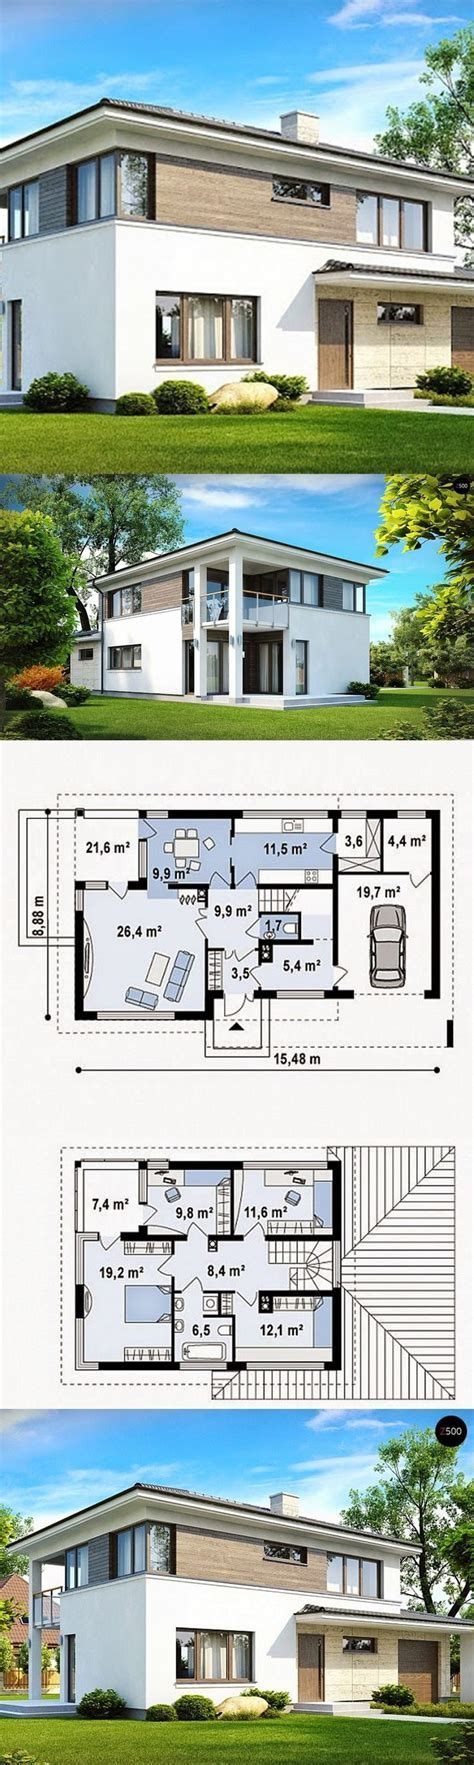 Do It Yourself House Plans 28 Images Small Ranch Home | do it yourself small home plans 28 images 17 do it